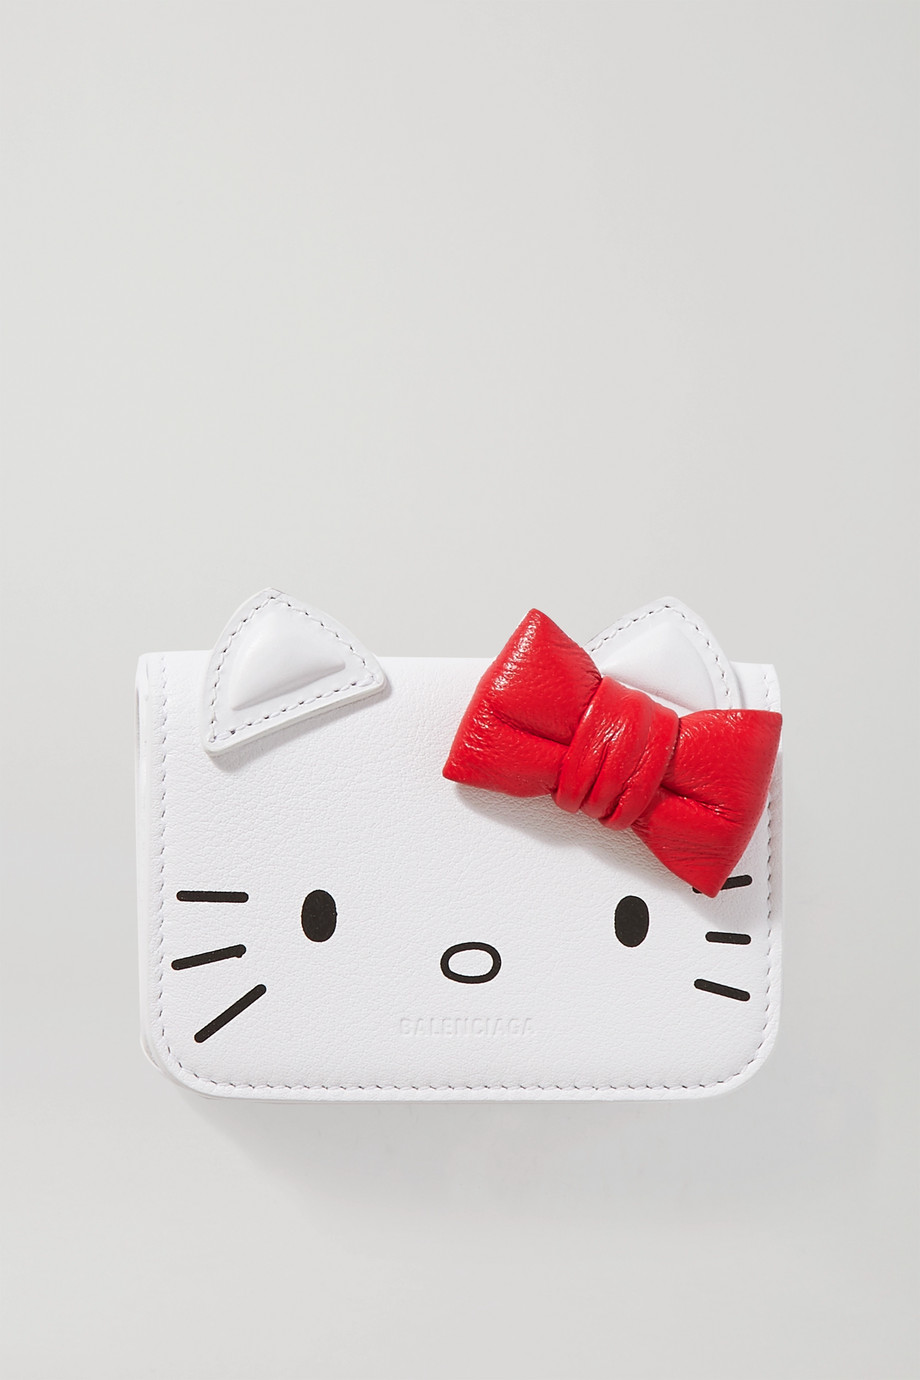 Balenciaga + Hello Kitty mini printed leather wallet